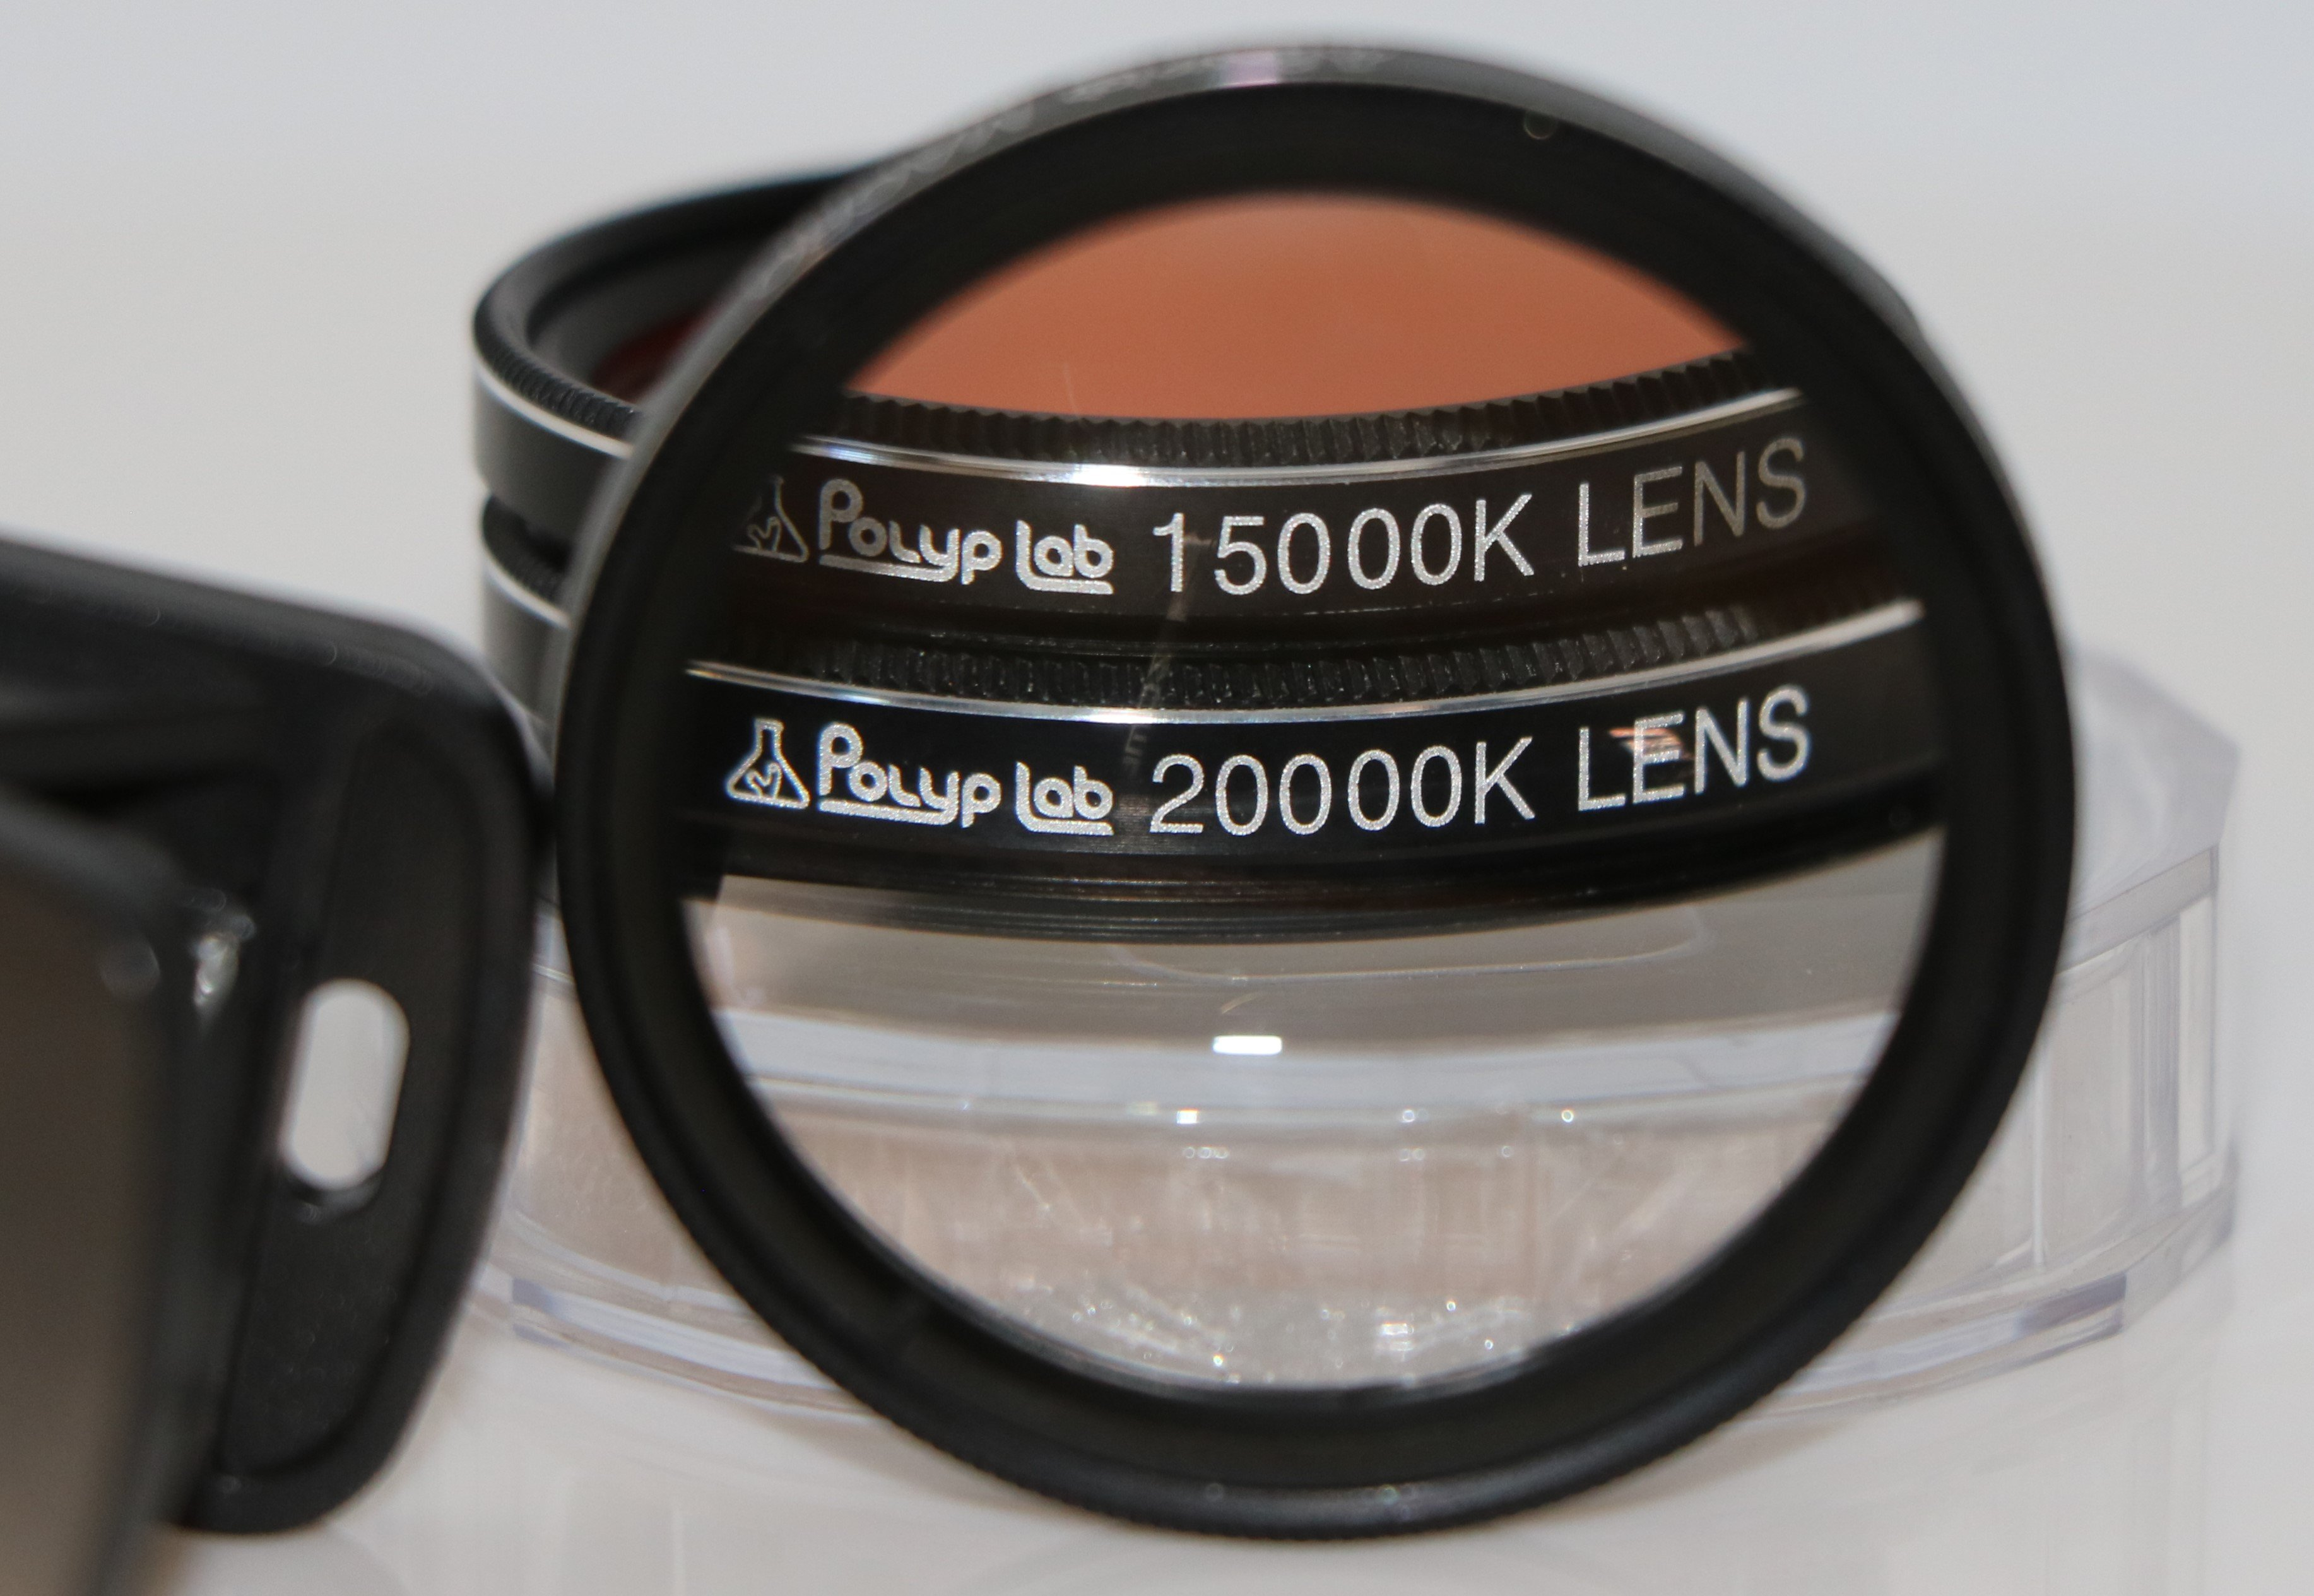 Coral View Lens